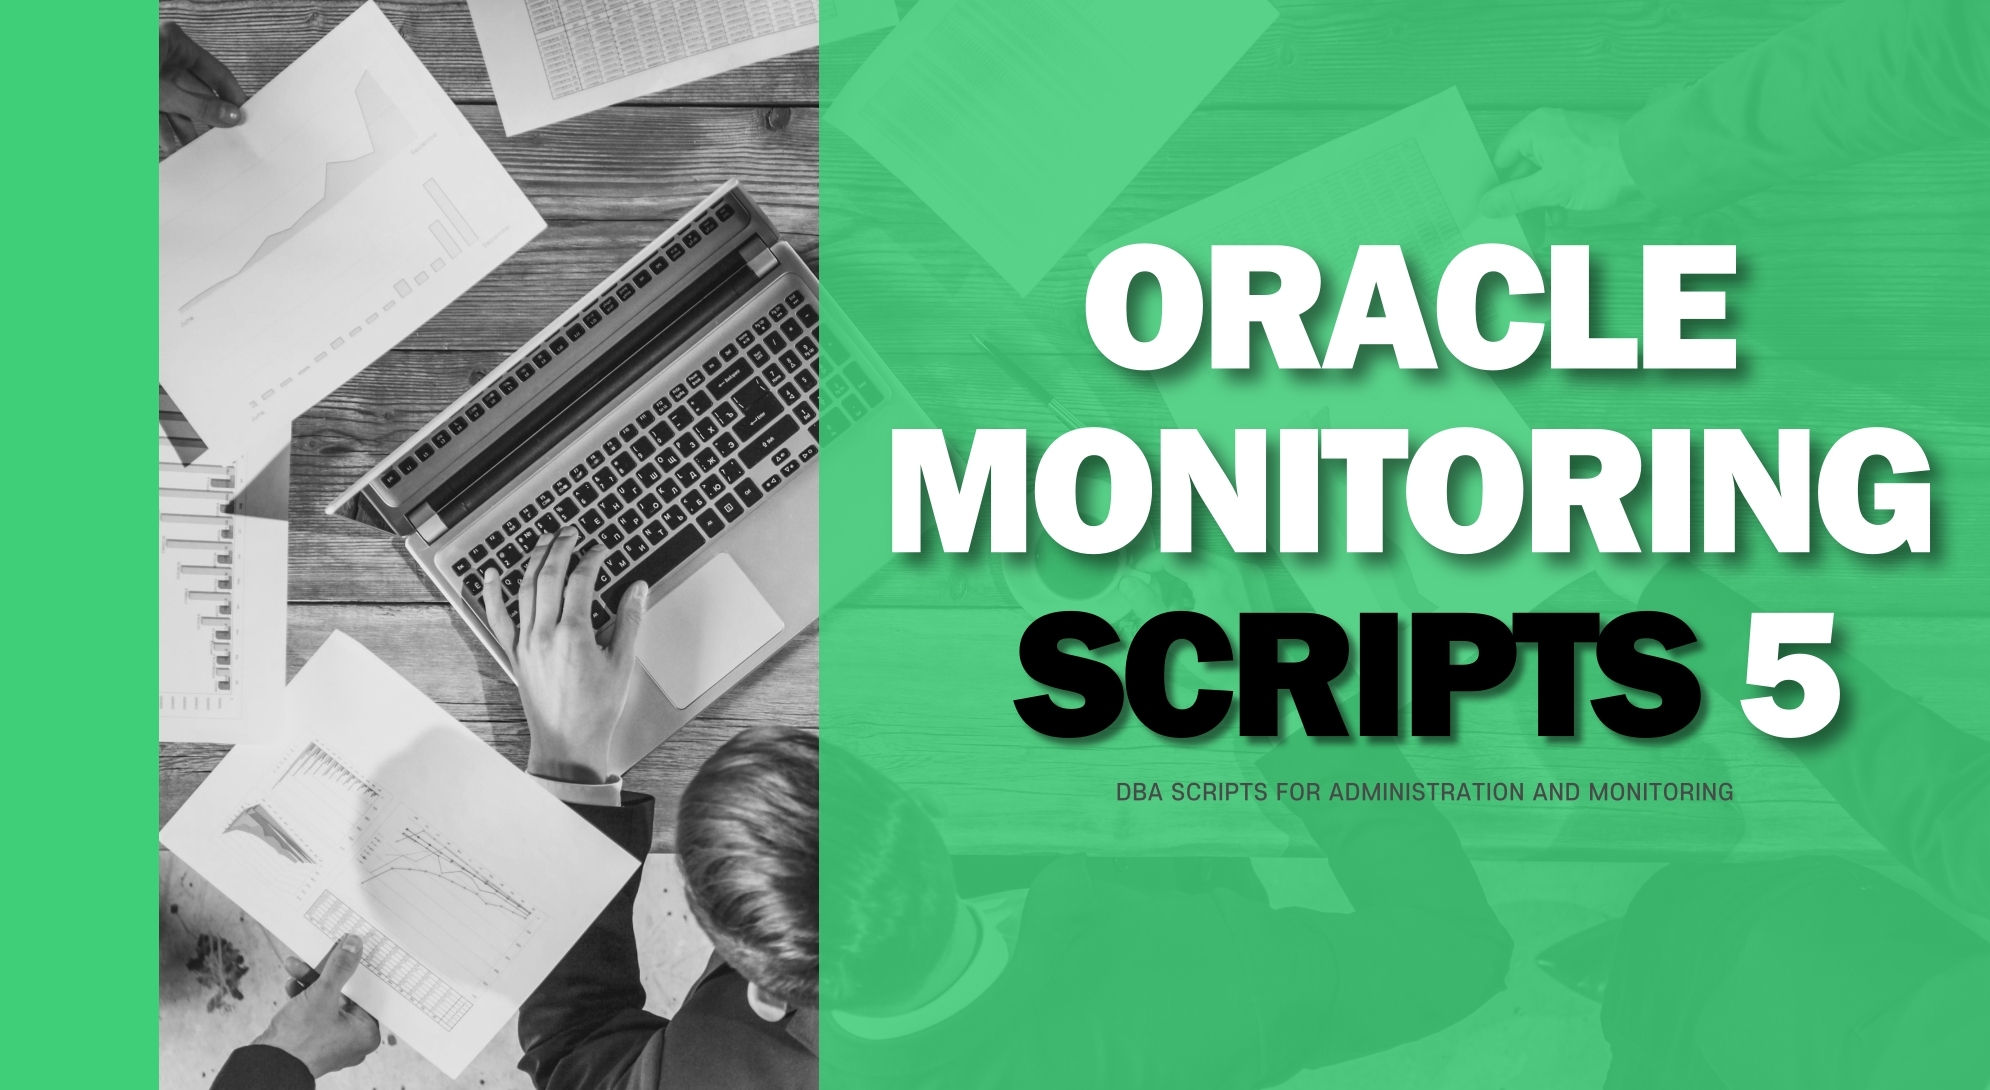 Oracle Monitoring Scripts 5